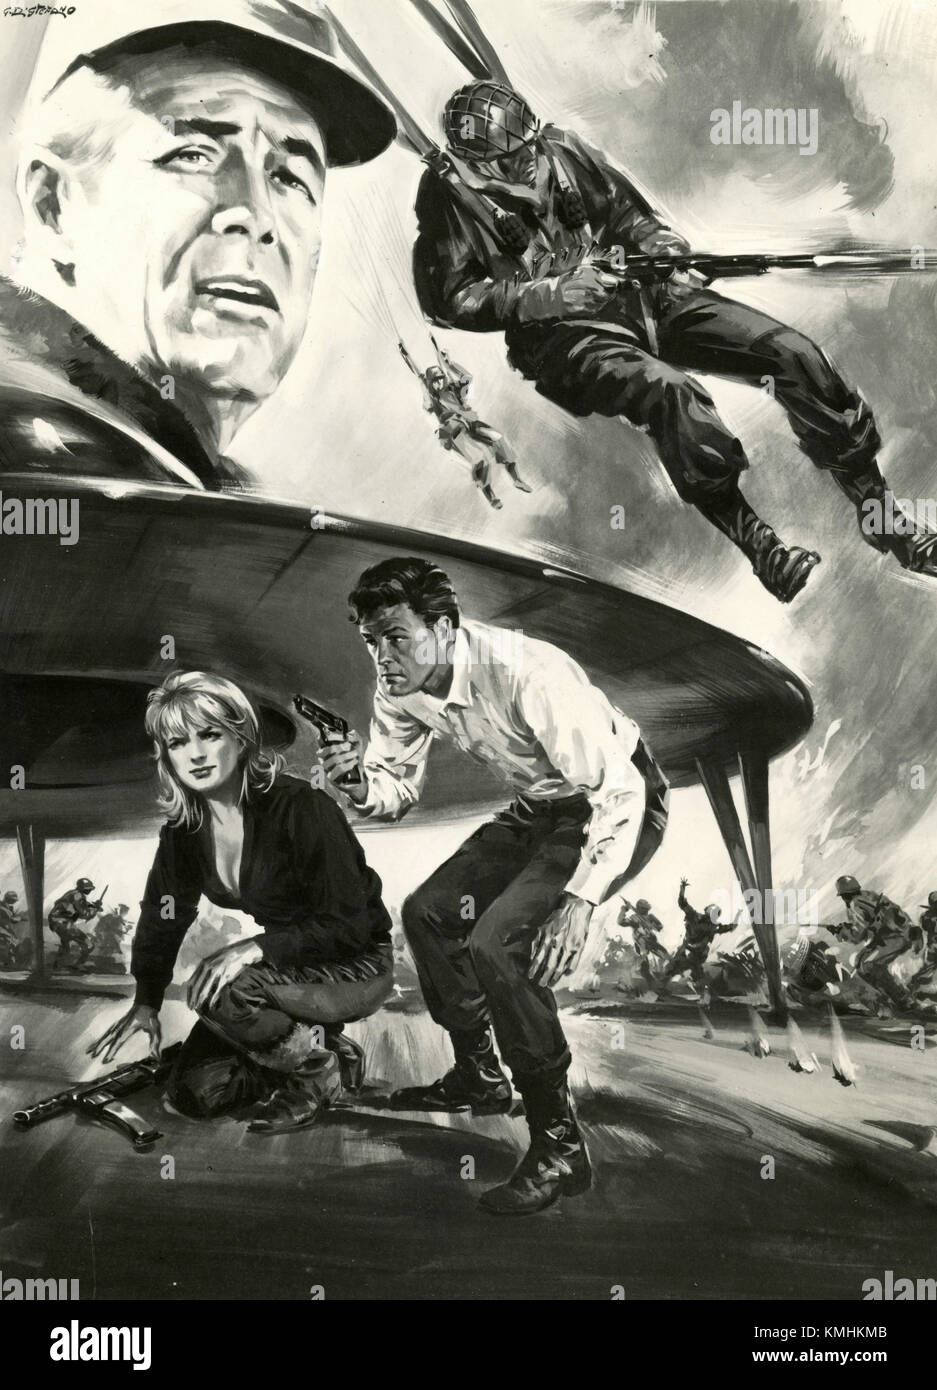 Movie poster illustration of the film The Bamboo Saucer, 1968 - Stock Image